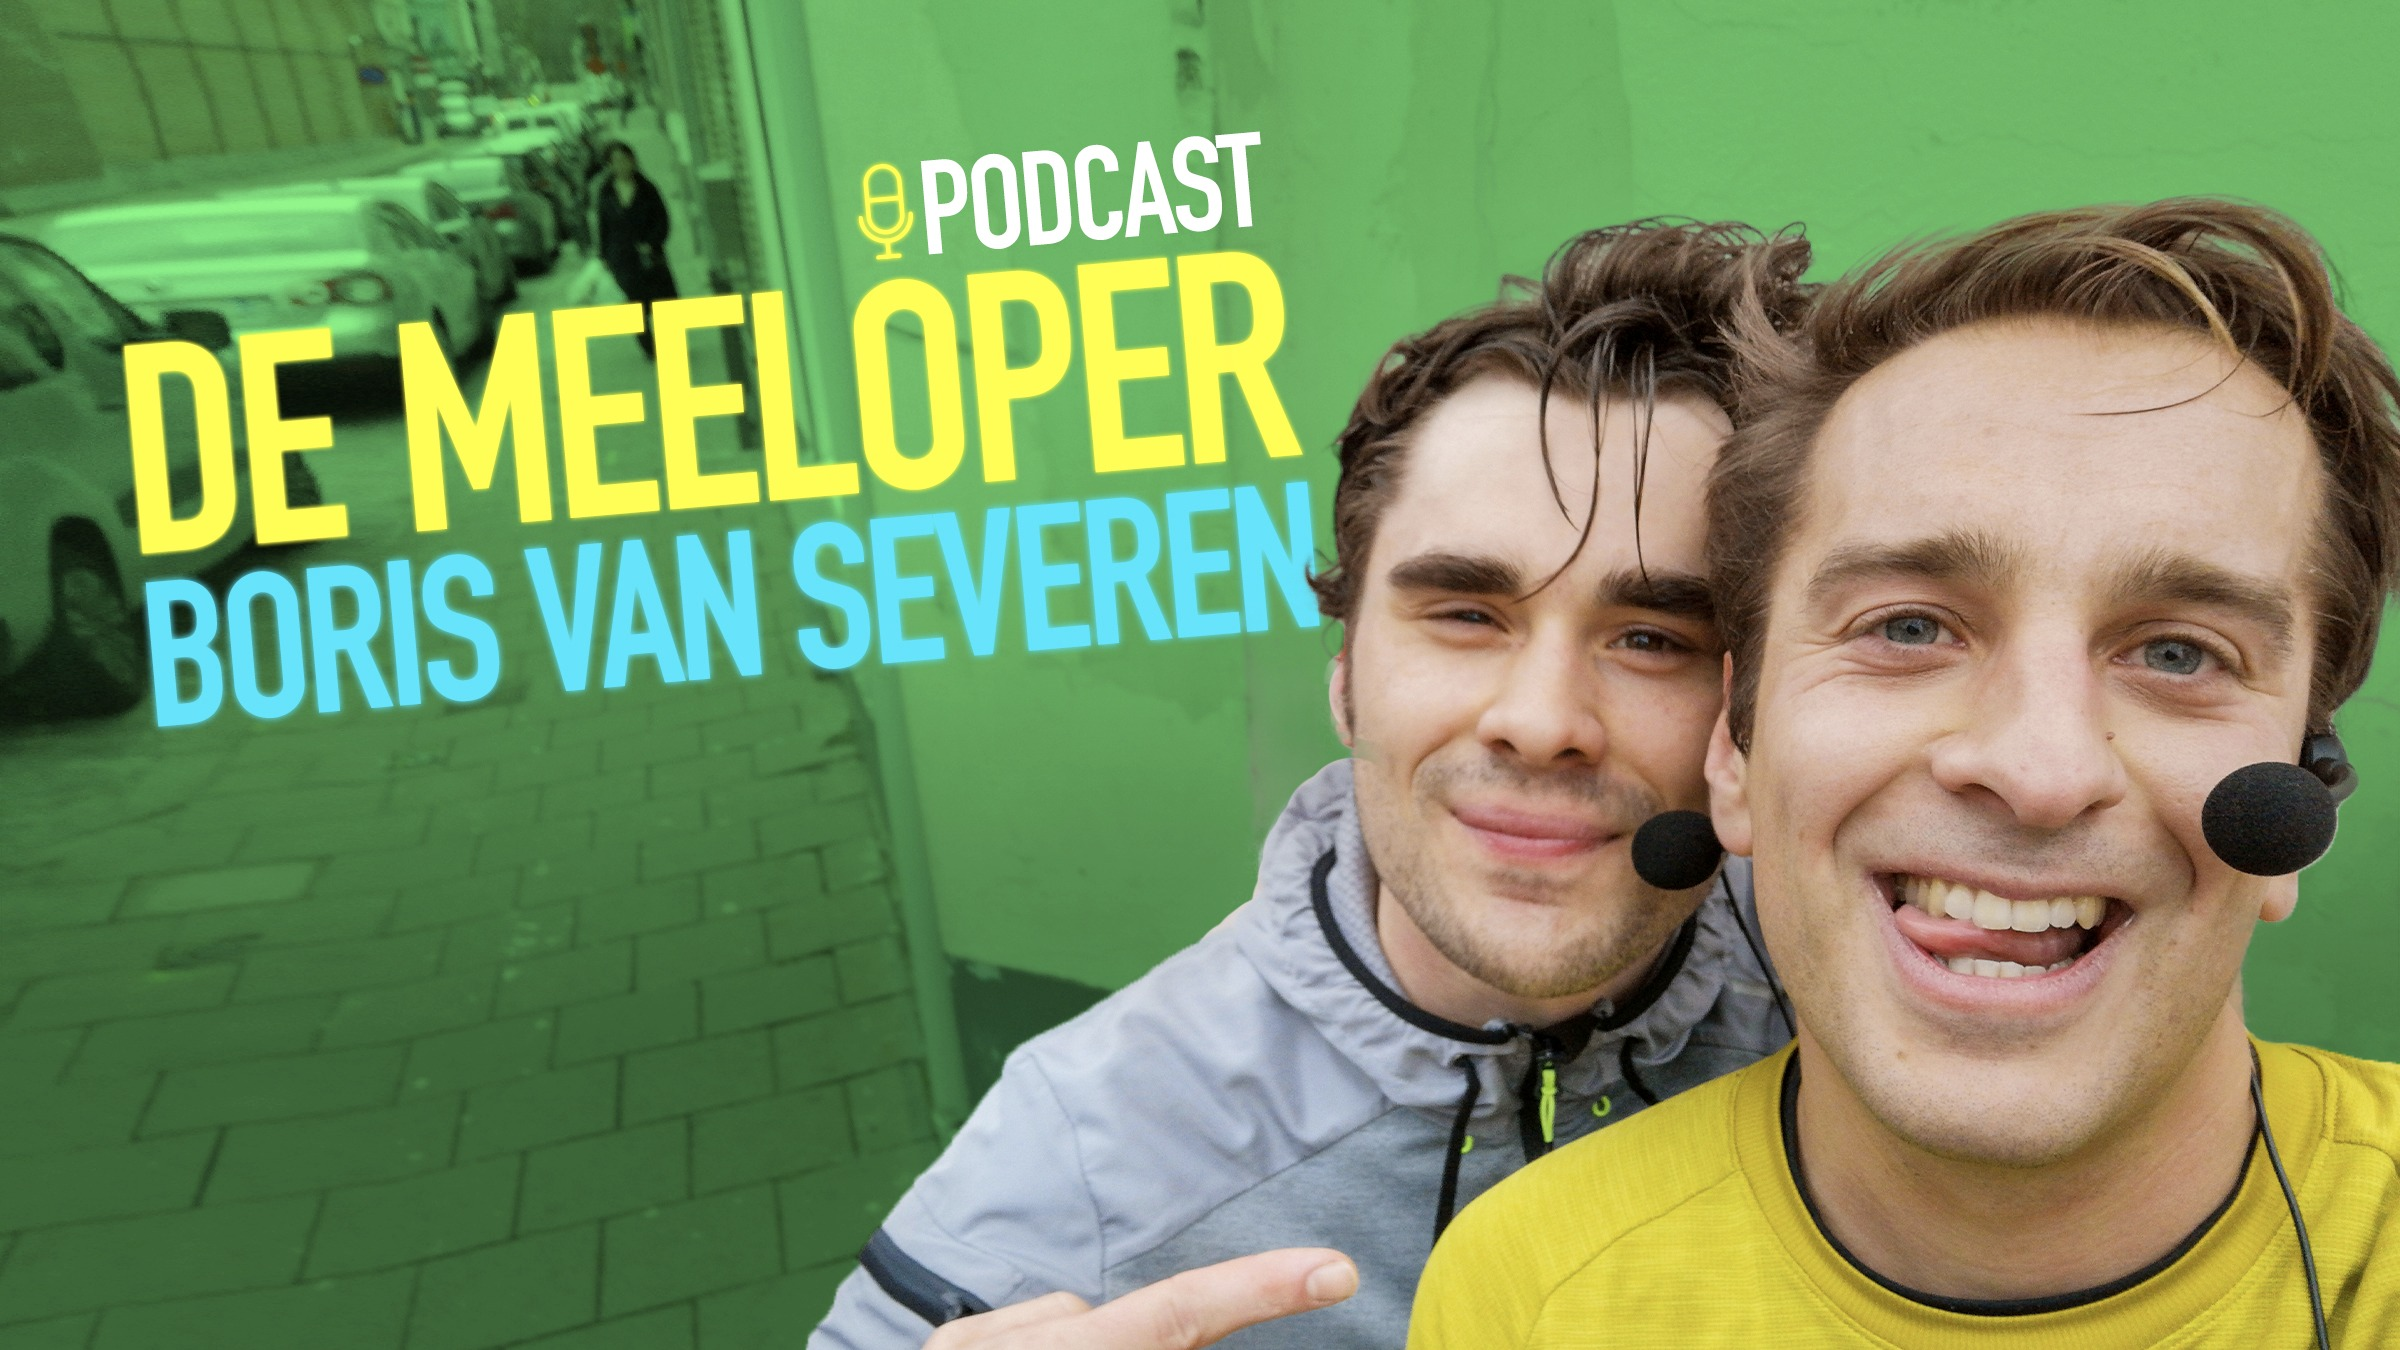 Podcast borisvanseveren home